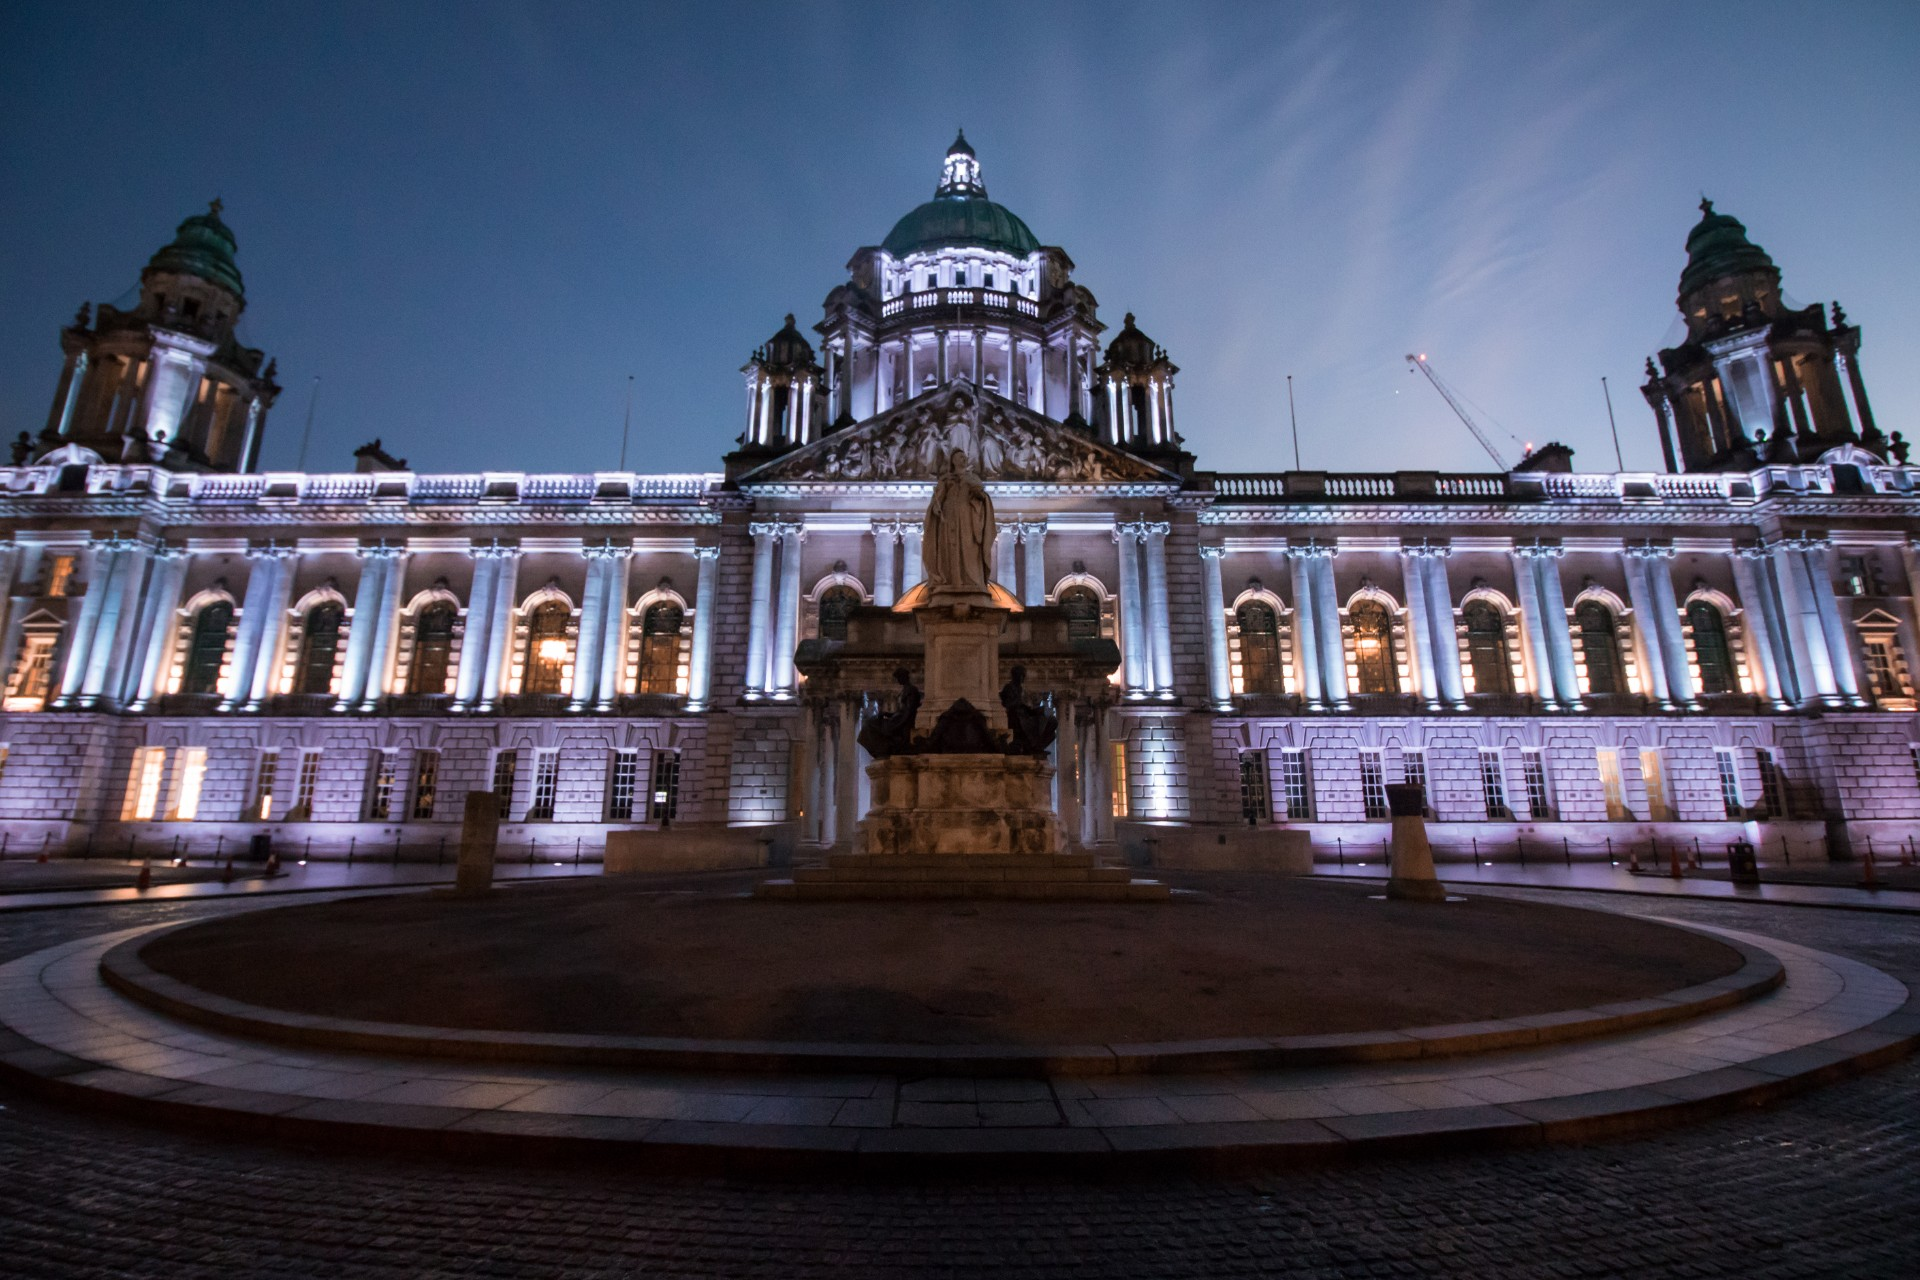 belfast-city-hall-lit-up-at-night-by-purple-lights-2-days-in-belfast-itinerary